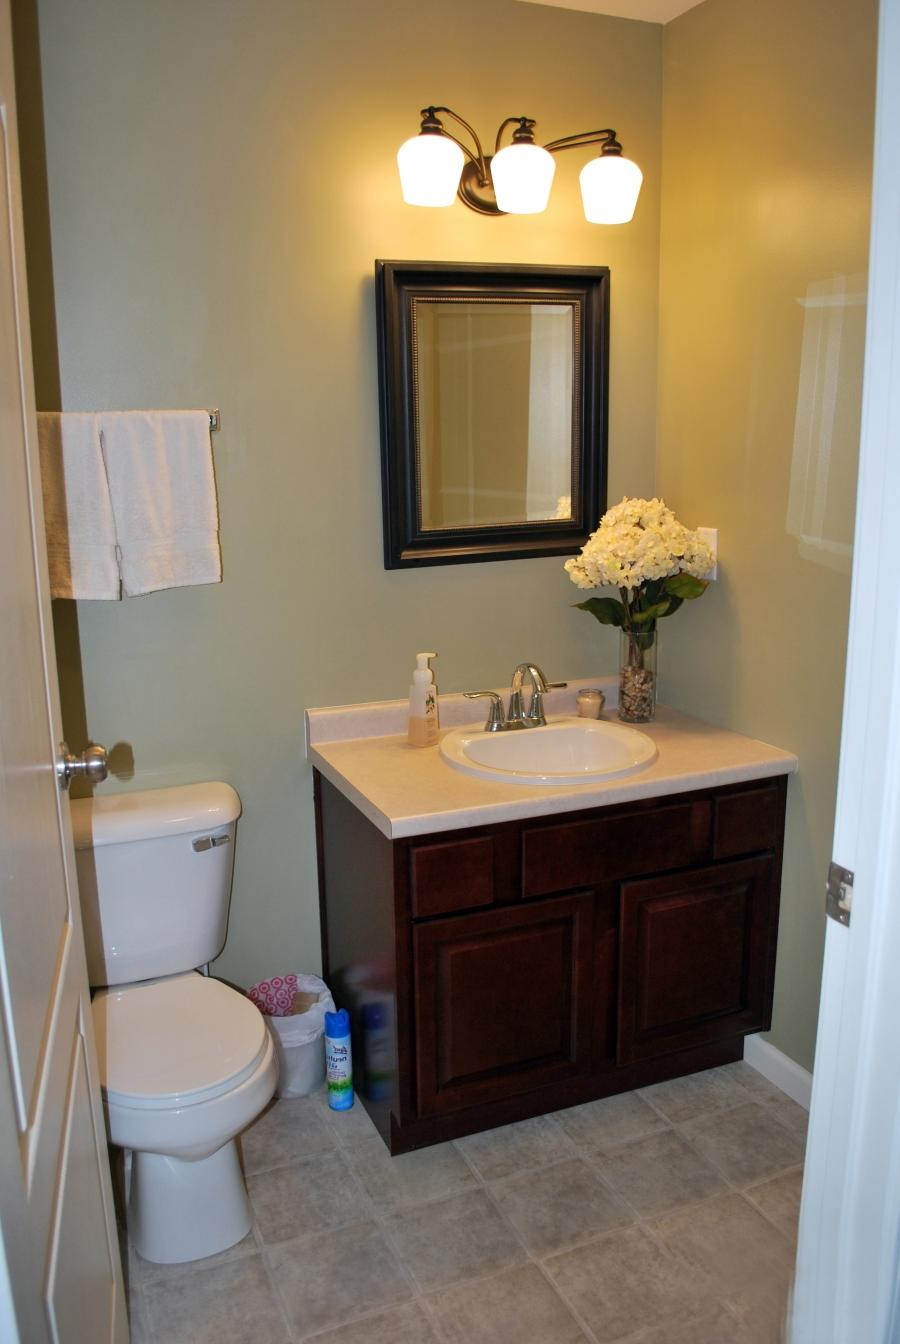 Half bathroom ideas photo gallery - Bathroom ideas photo gallery small spaces ...